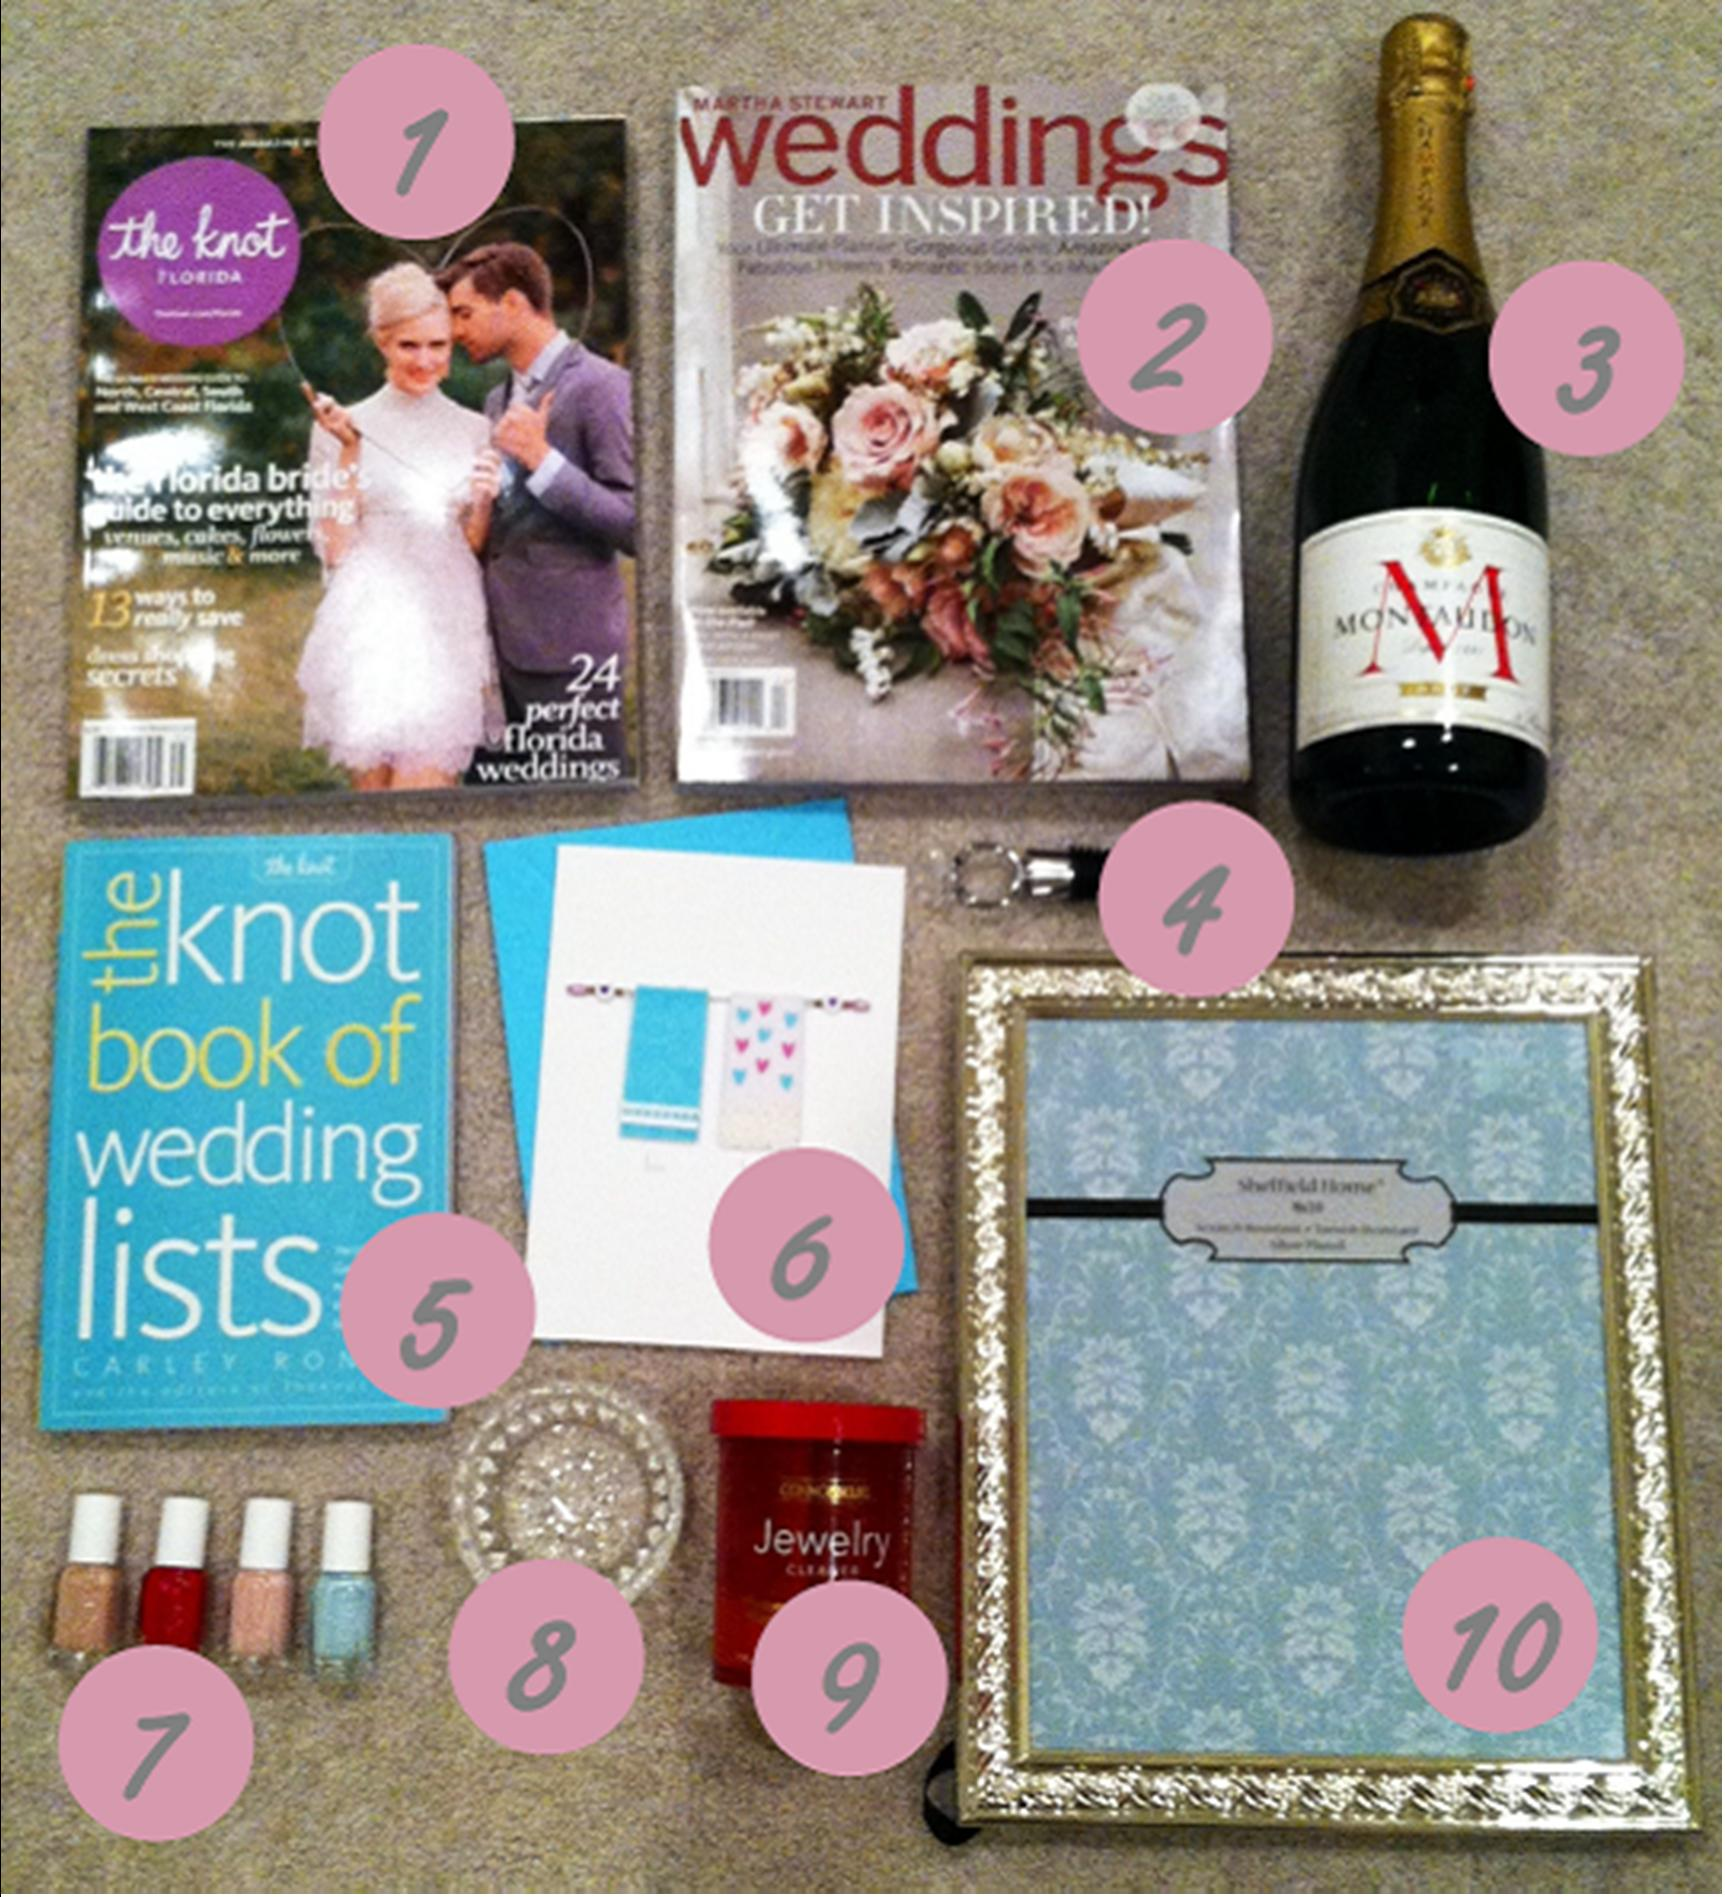 Wedding Gift Ideas For Best Friend Female Indian : bridal magazine the knot 2 bridal magazine martha stewart